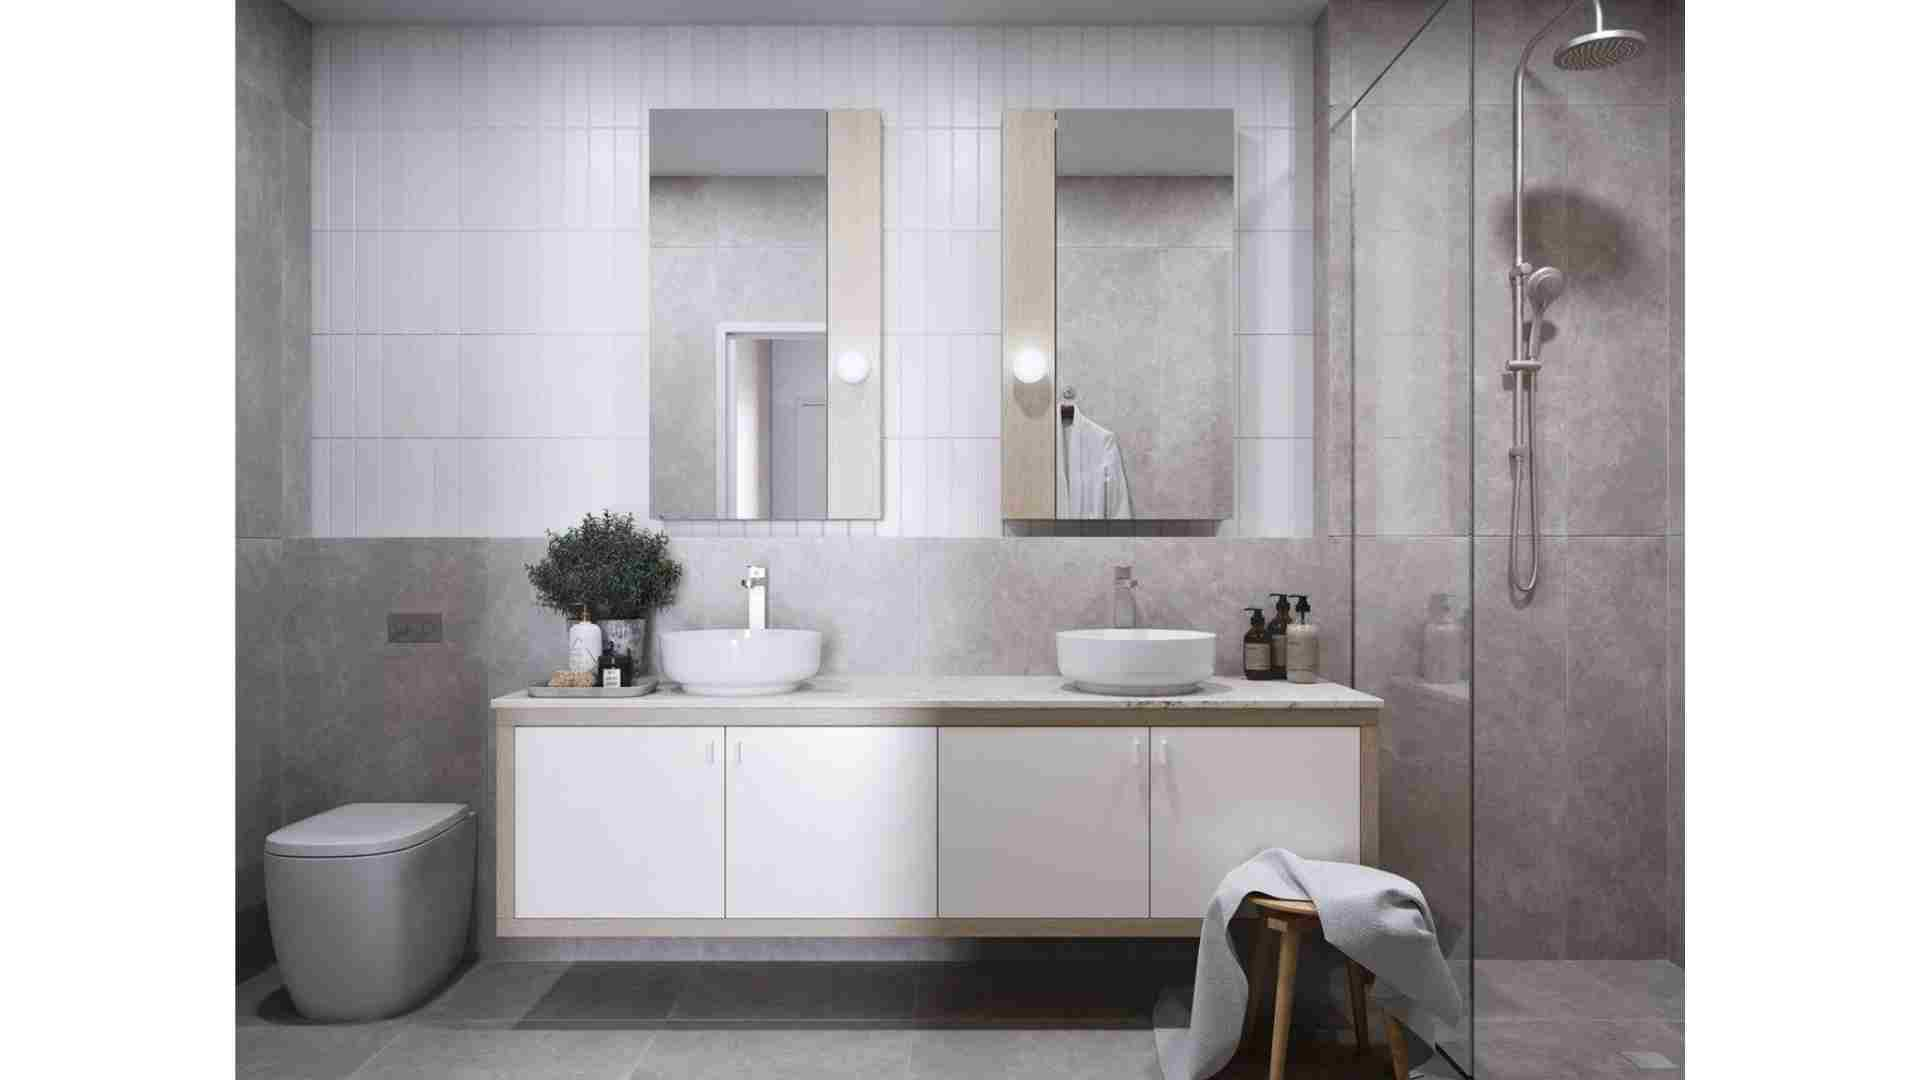 beige marble shower, white tiles, white cabinets with wooden trimmings